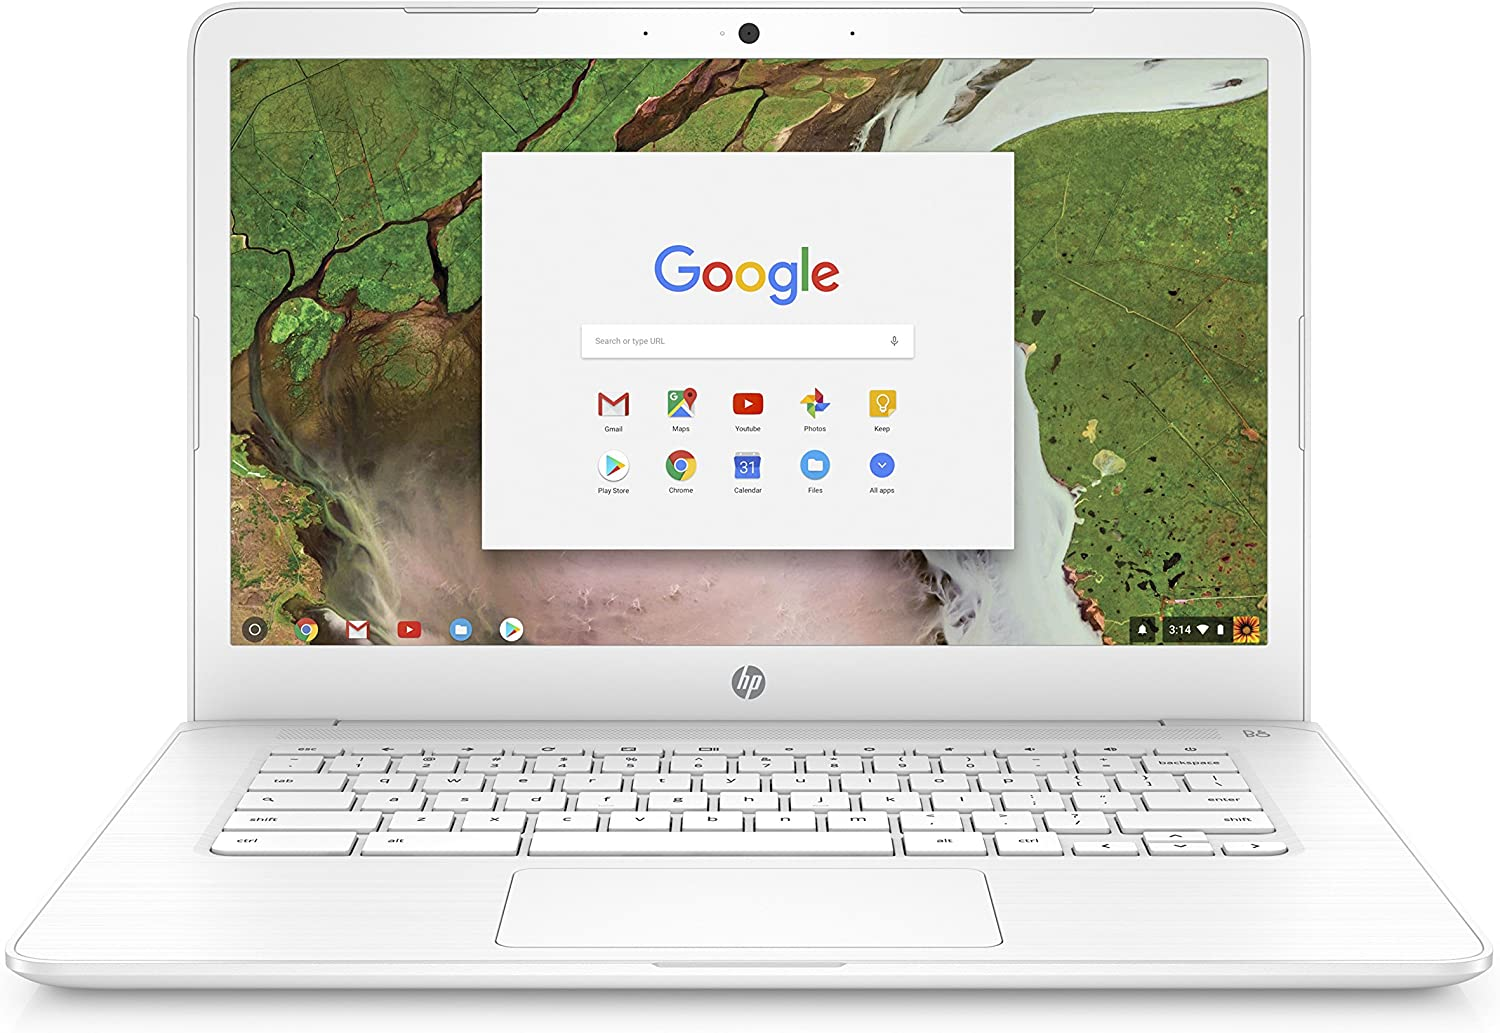 HP Chromebook 14-inch Laptop with 180-Degree Hinge, Intel Celeron N3350 Processor, 4 GB RAM, 16 GB eMMC Storage, Chrome OS (14-ca030nr, White)